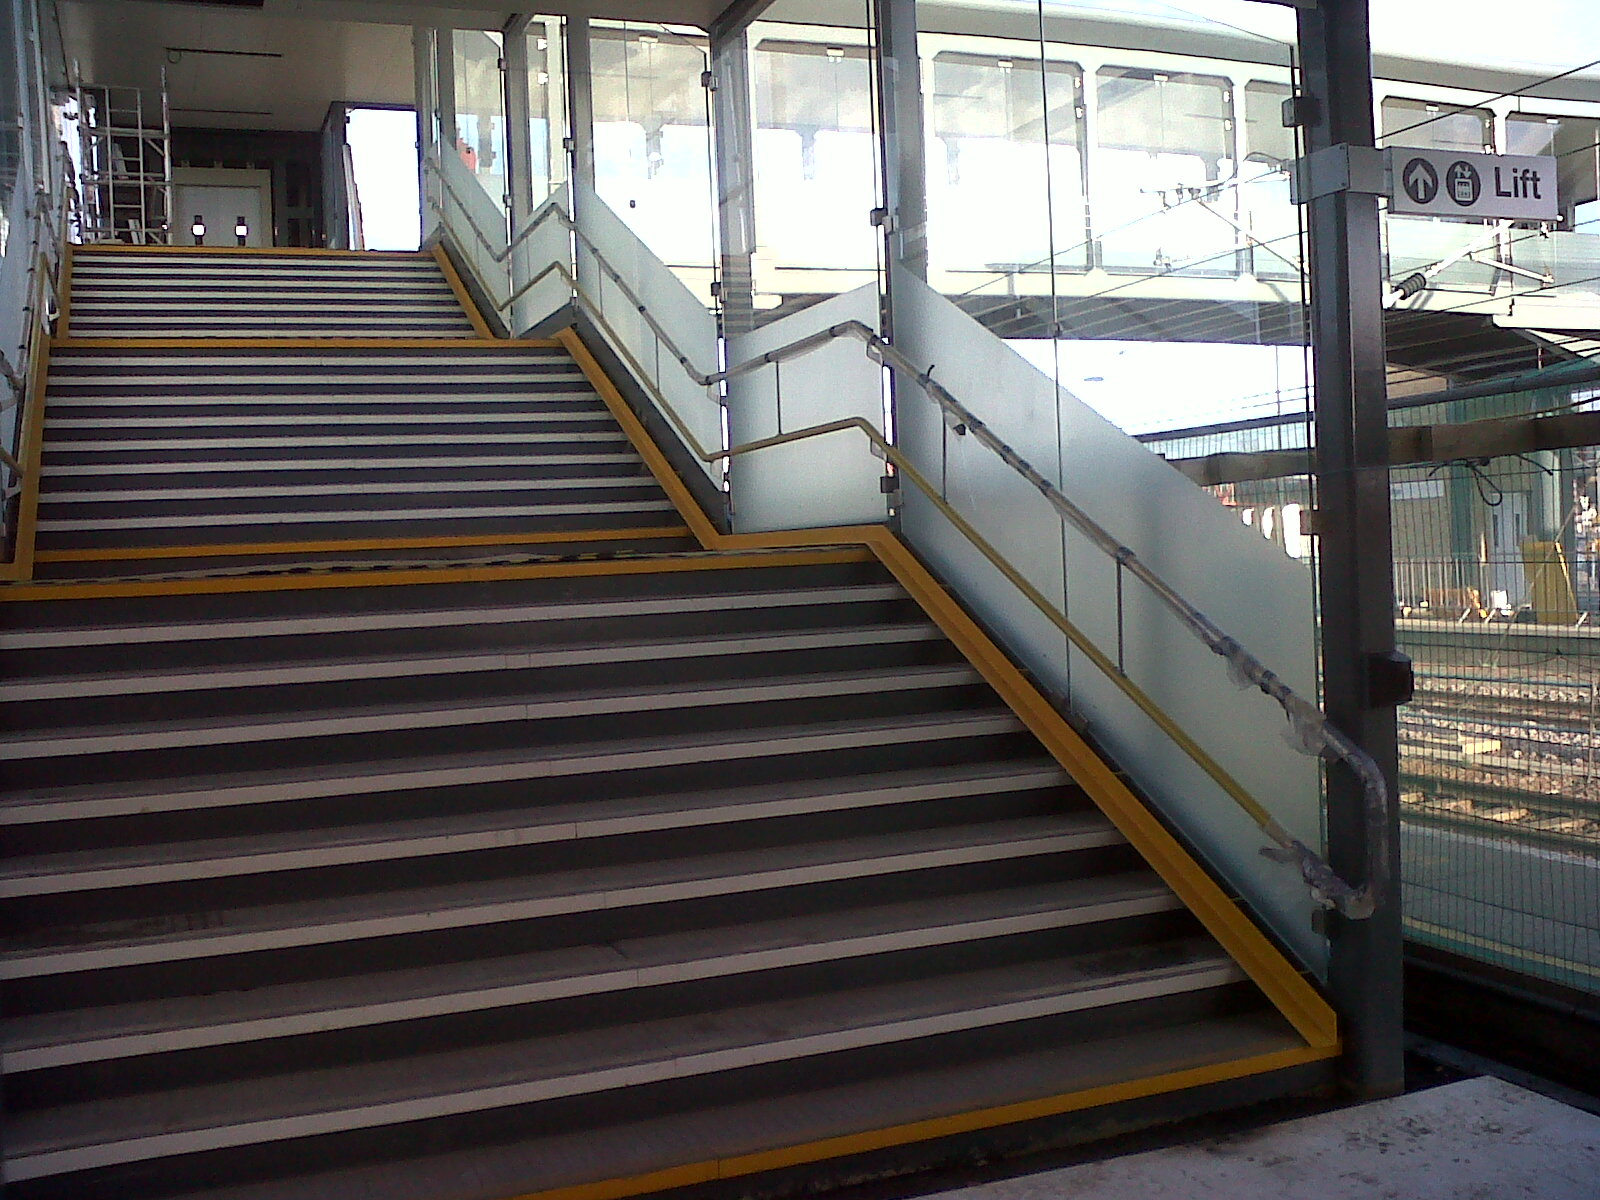 011-stairs-ready-to-use